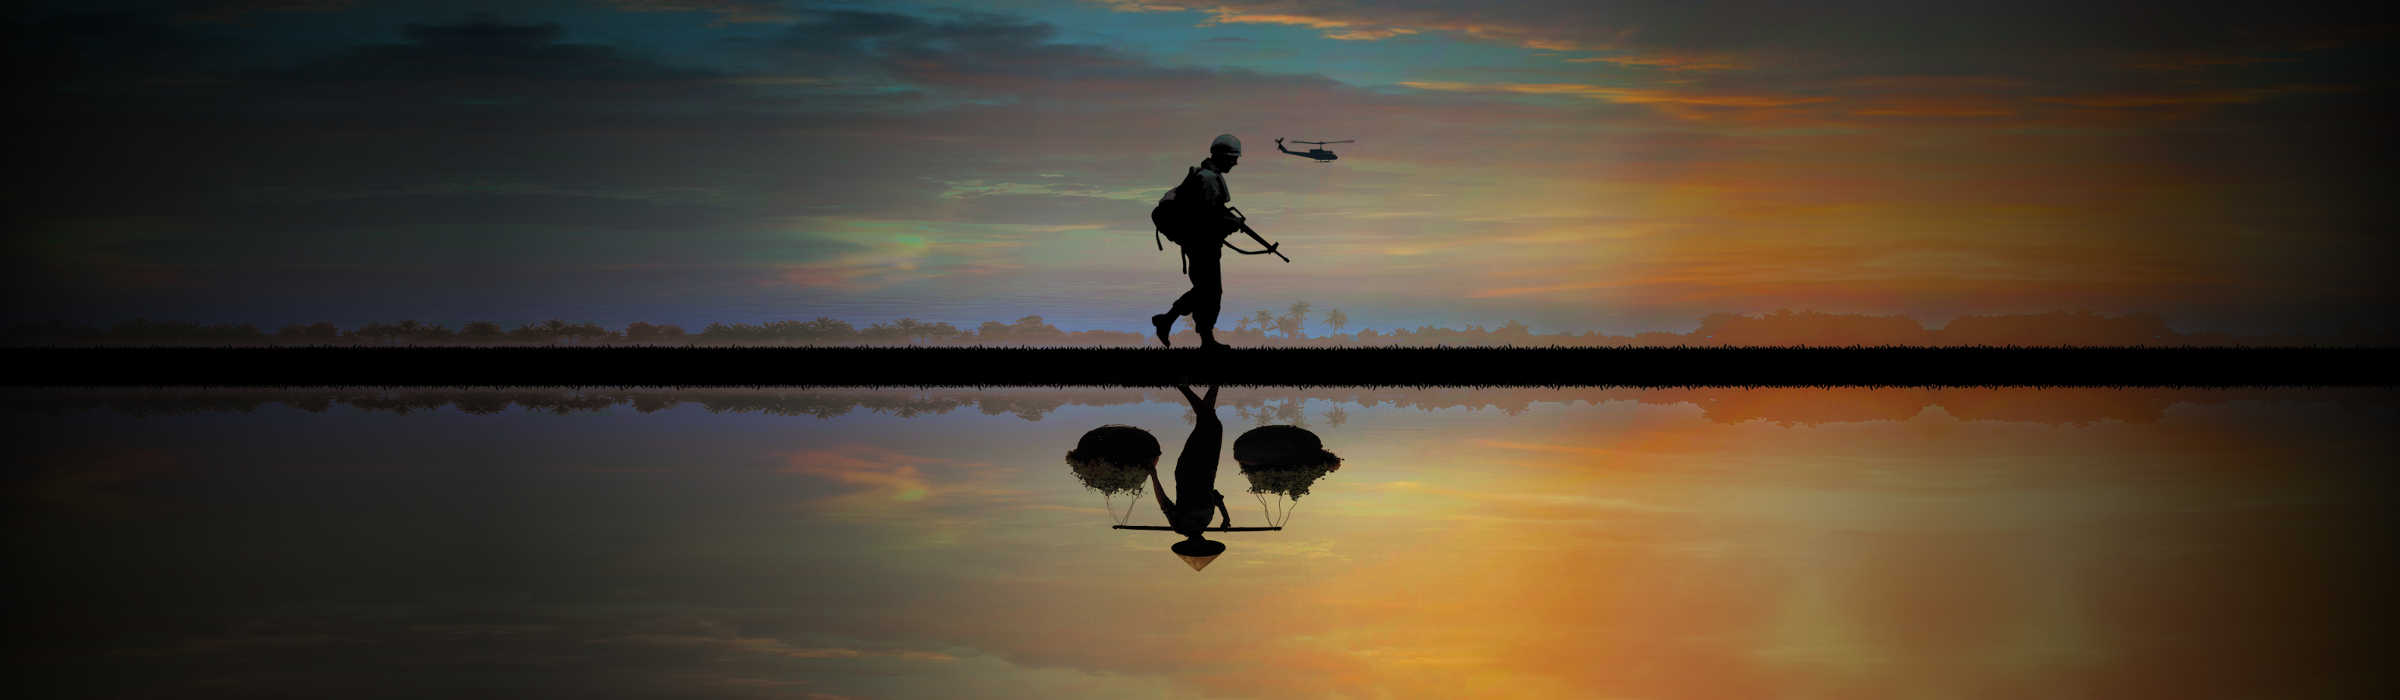 silhouette of soldier and farmer walking through field